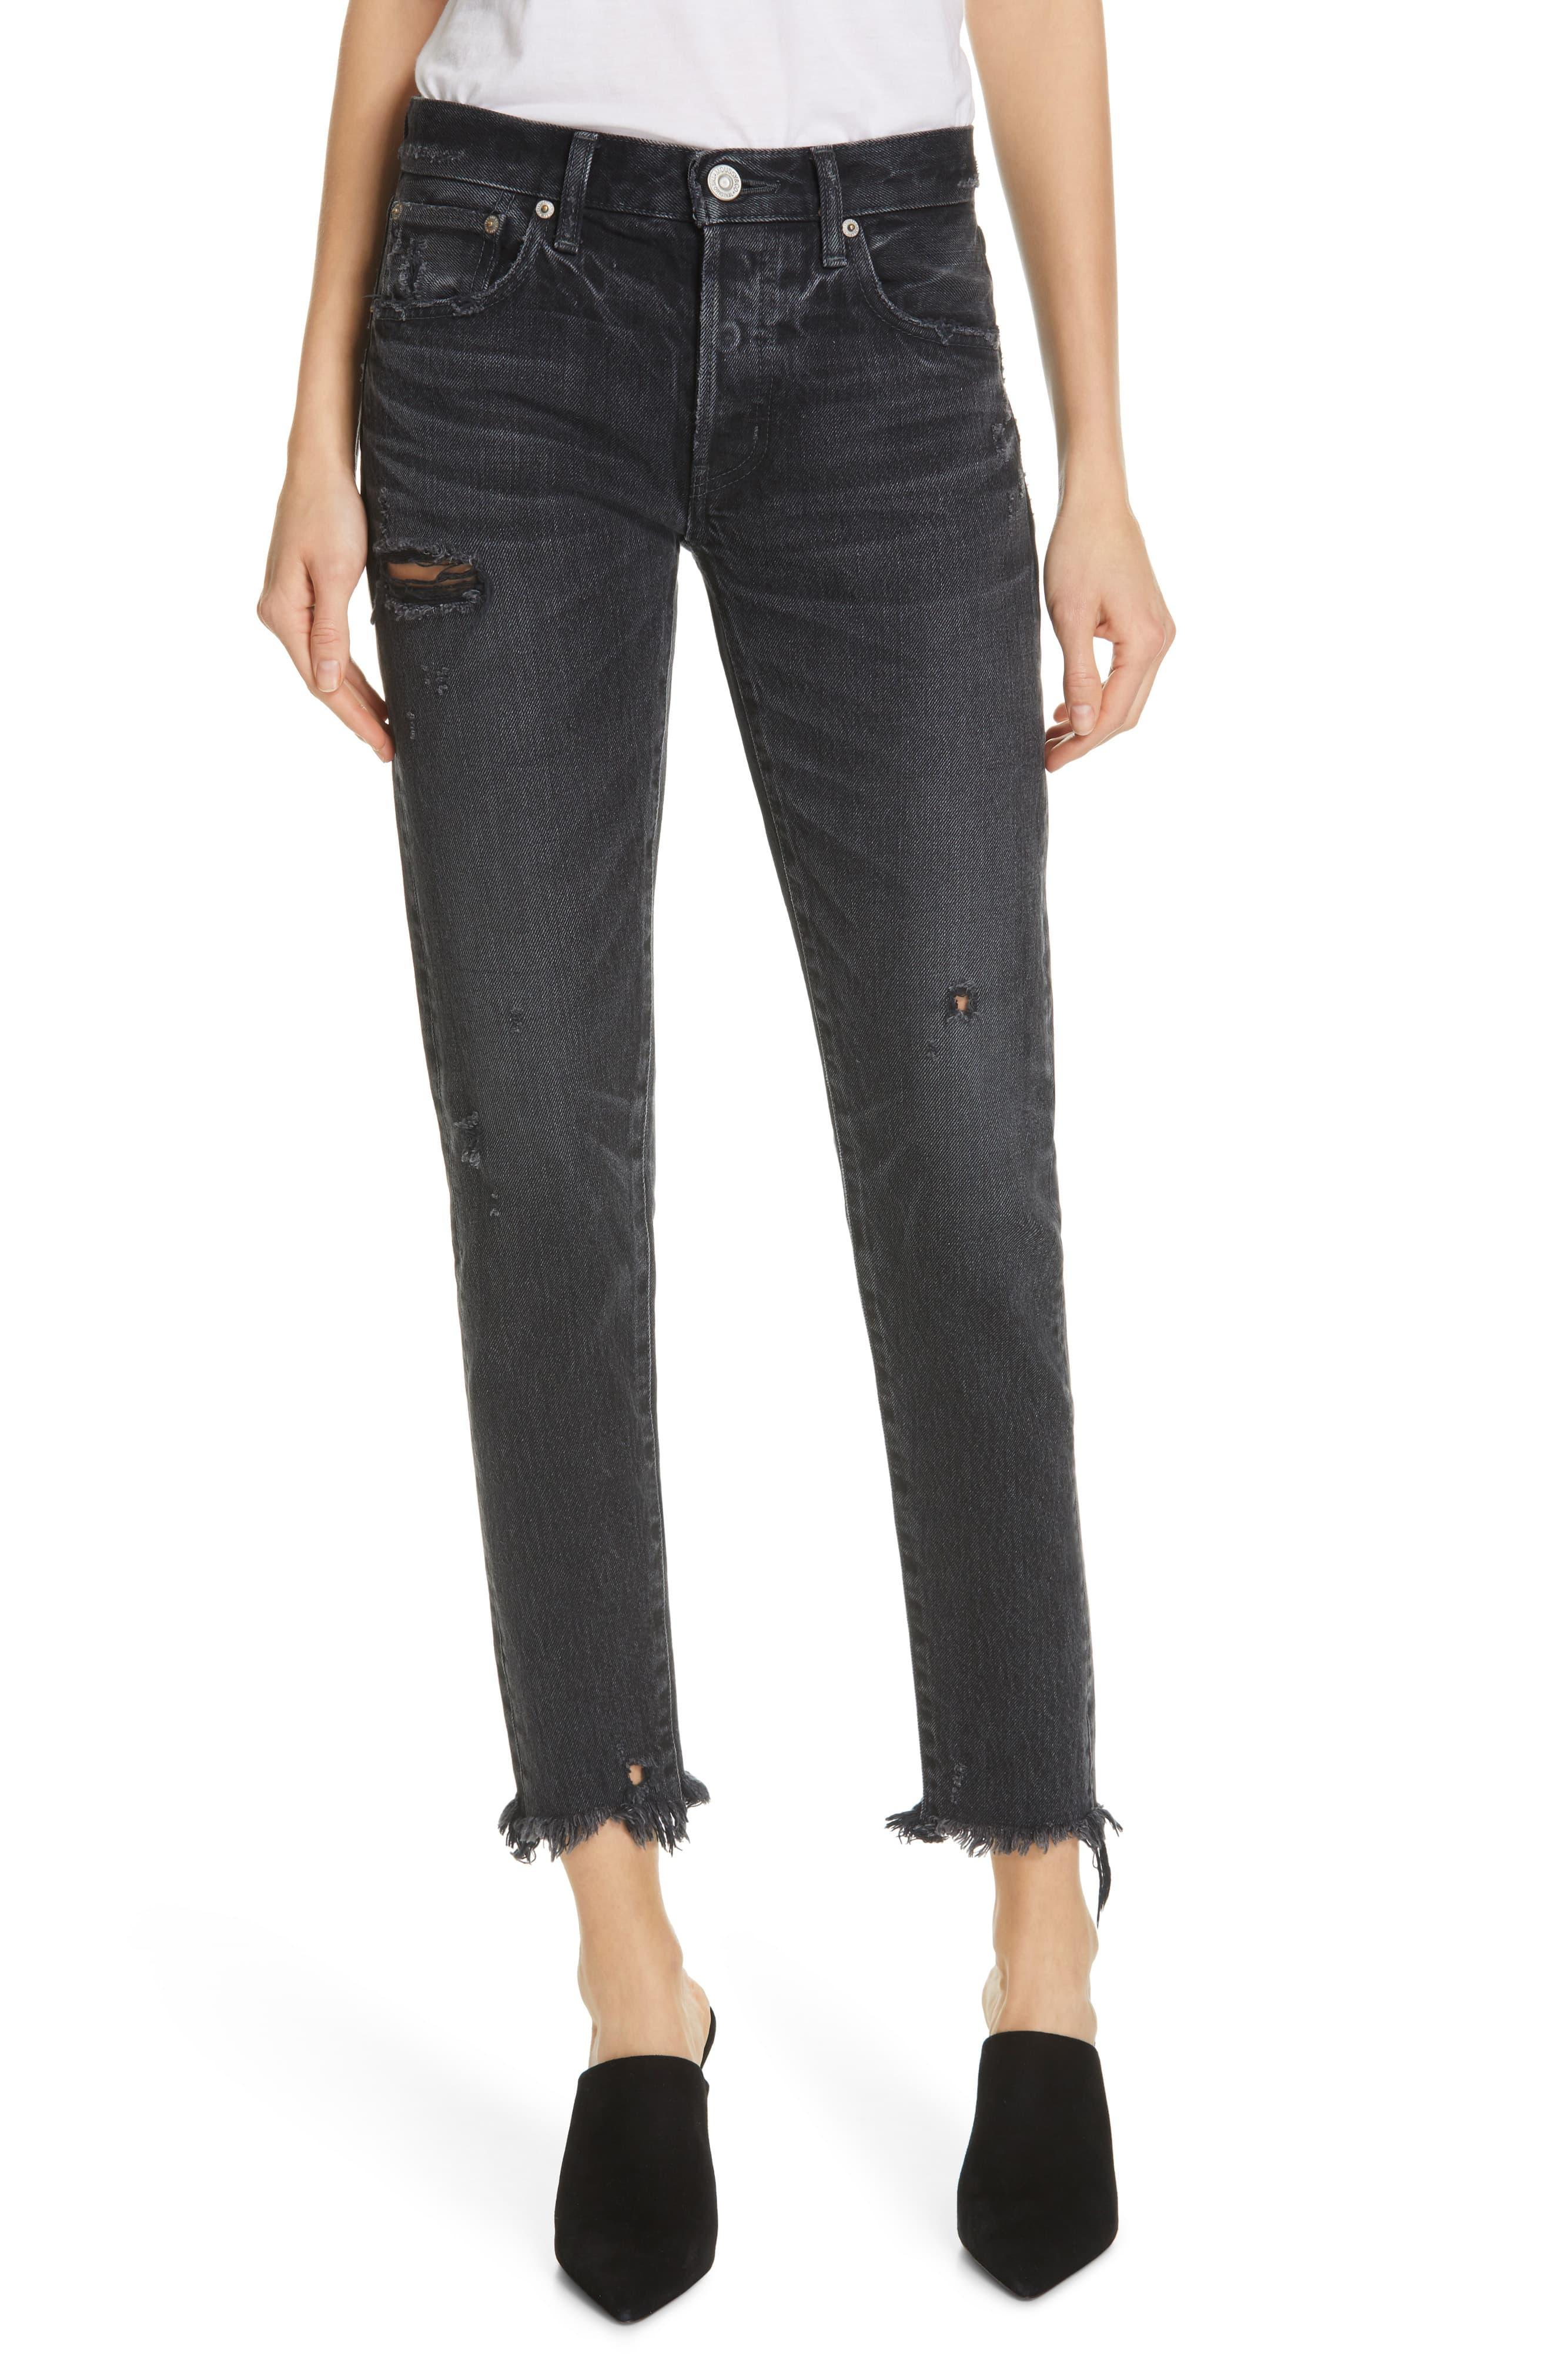 843733a34da Moussy Kelley Tapered Jean. Size 25,26,28,29,30. in Black - Save 15 ...